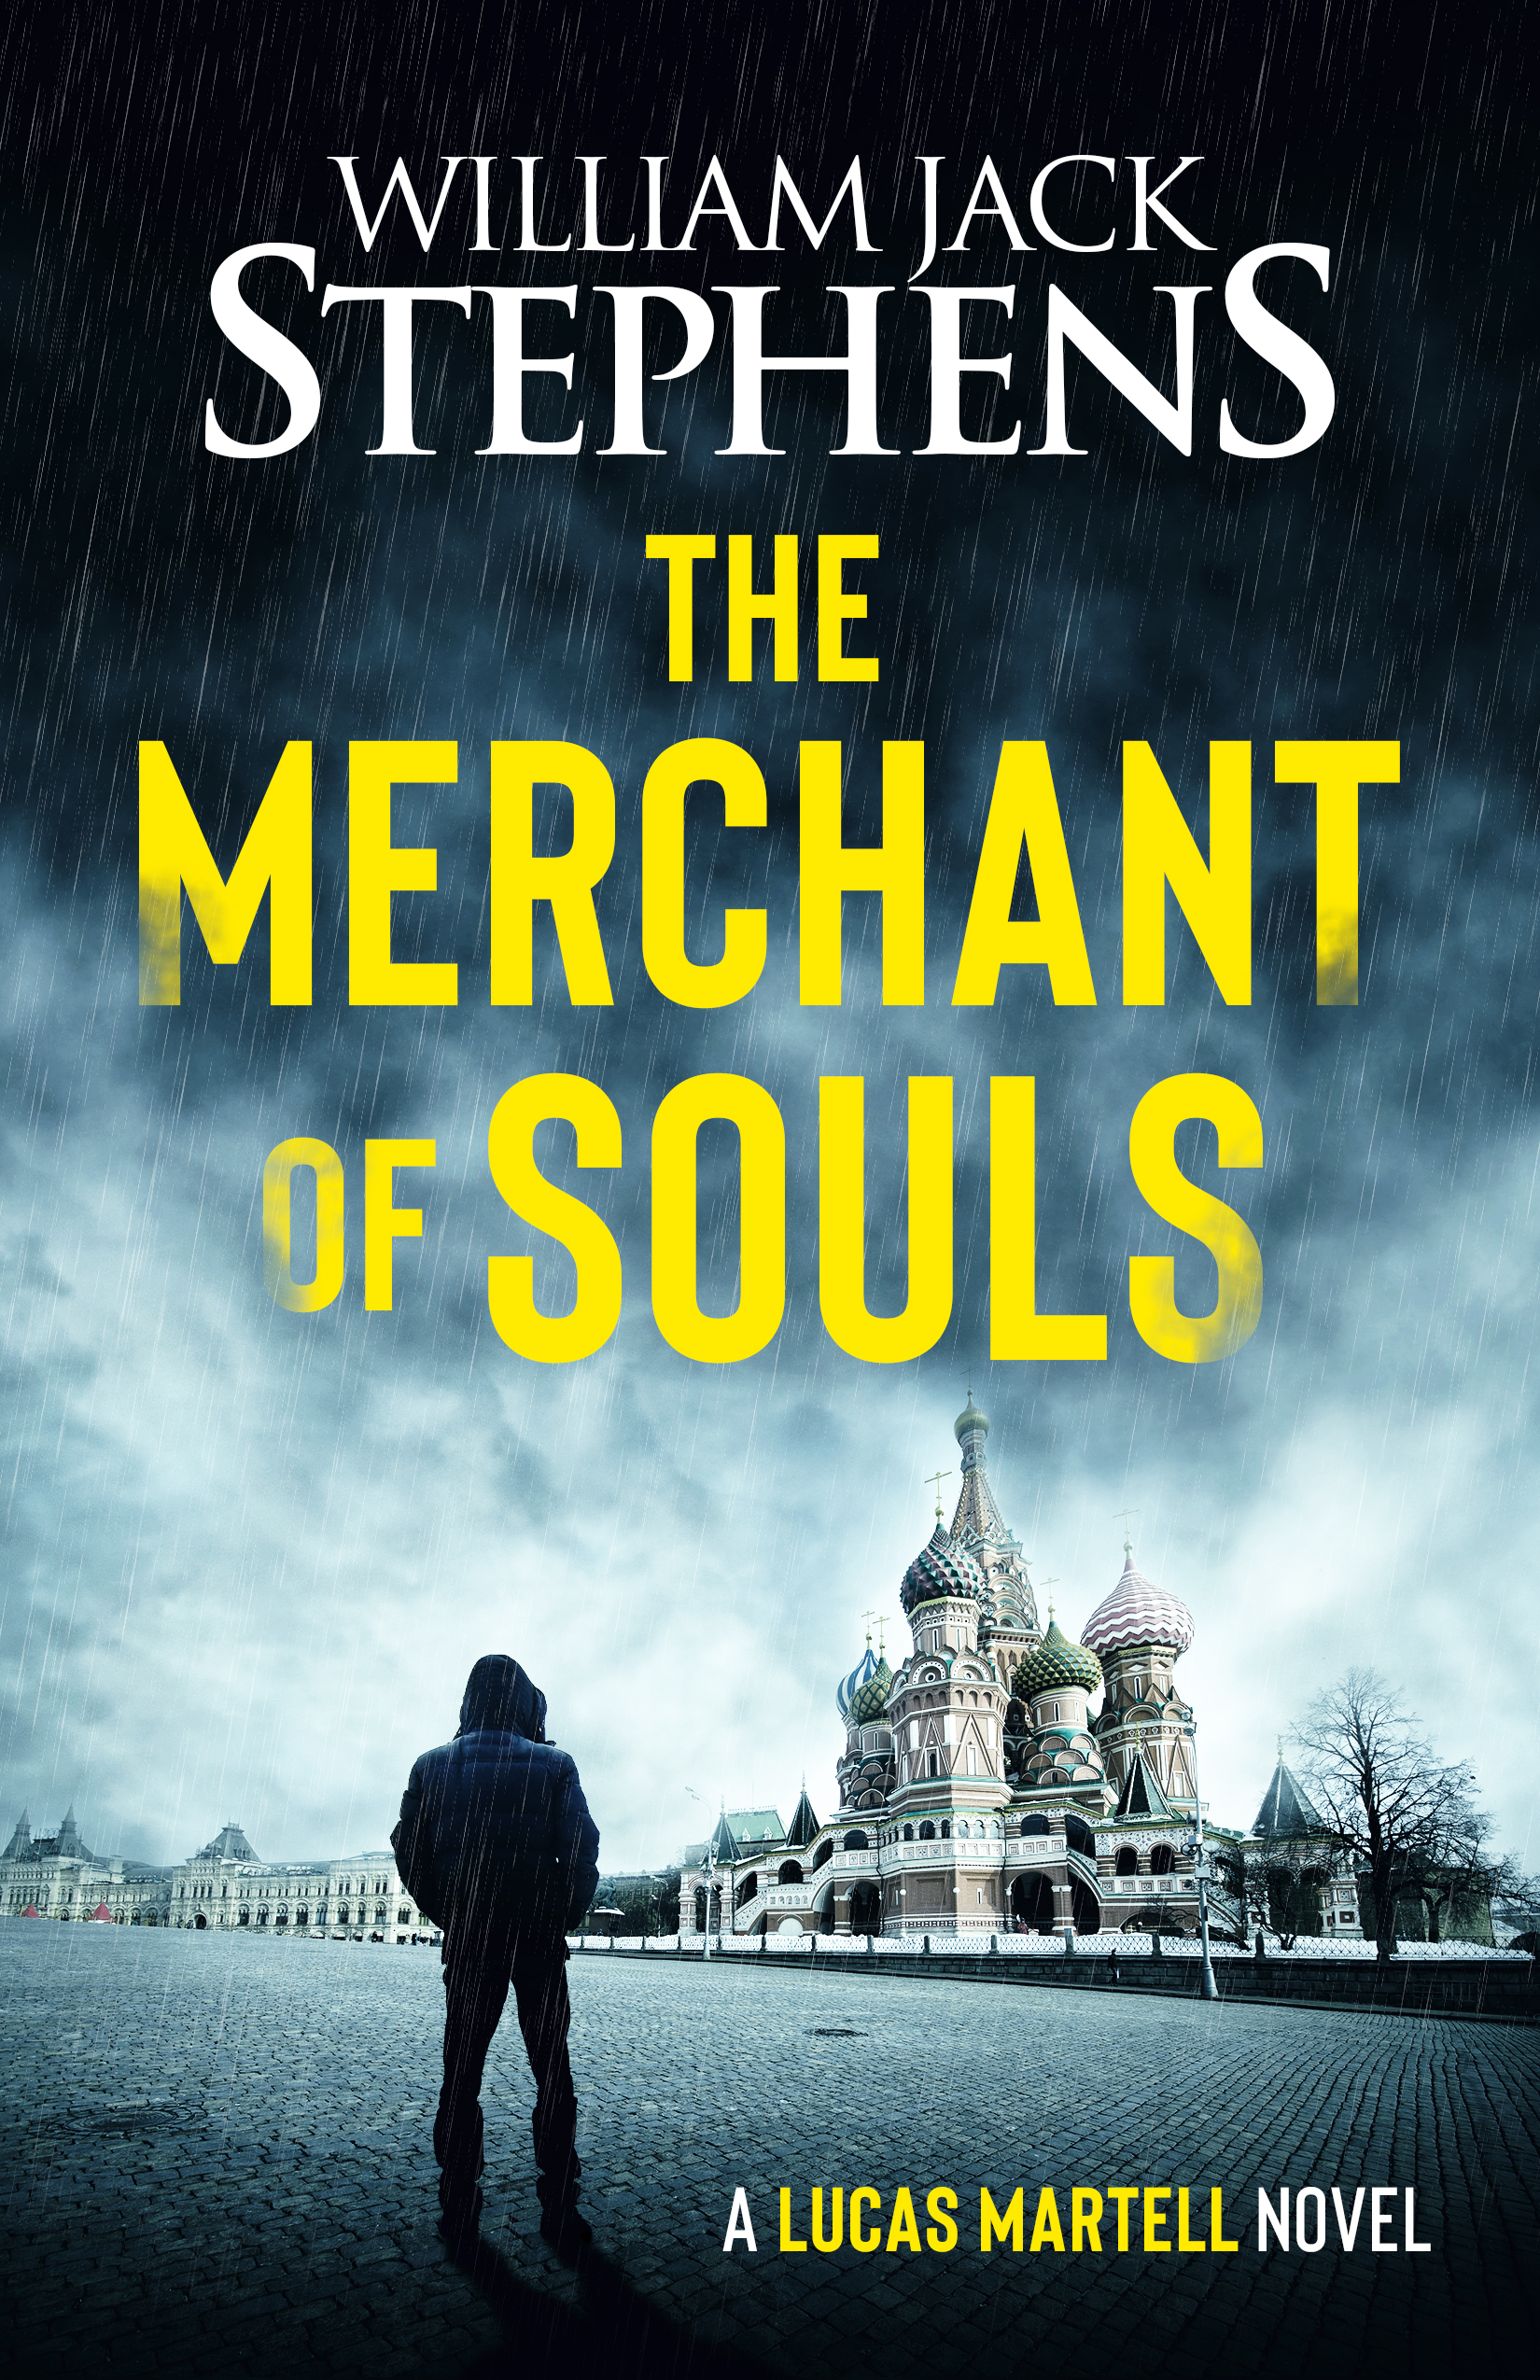 The Merchant of Souls by William Jack Stephens